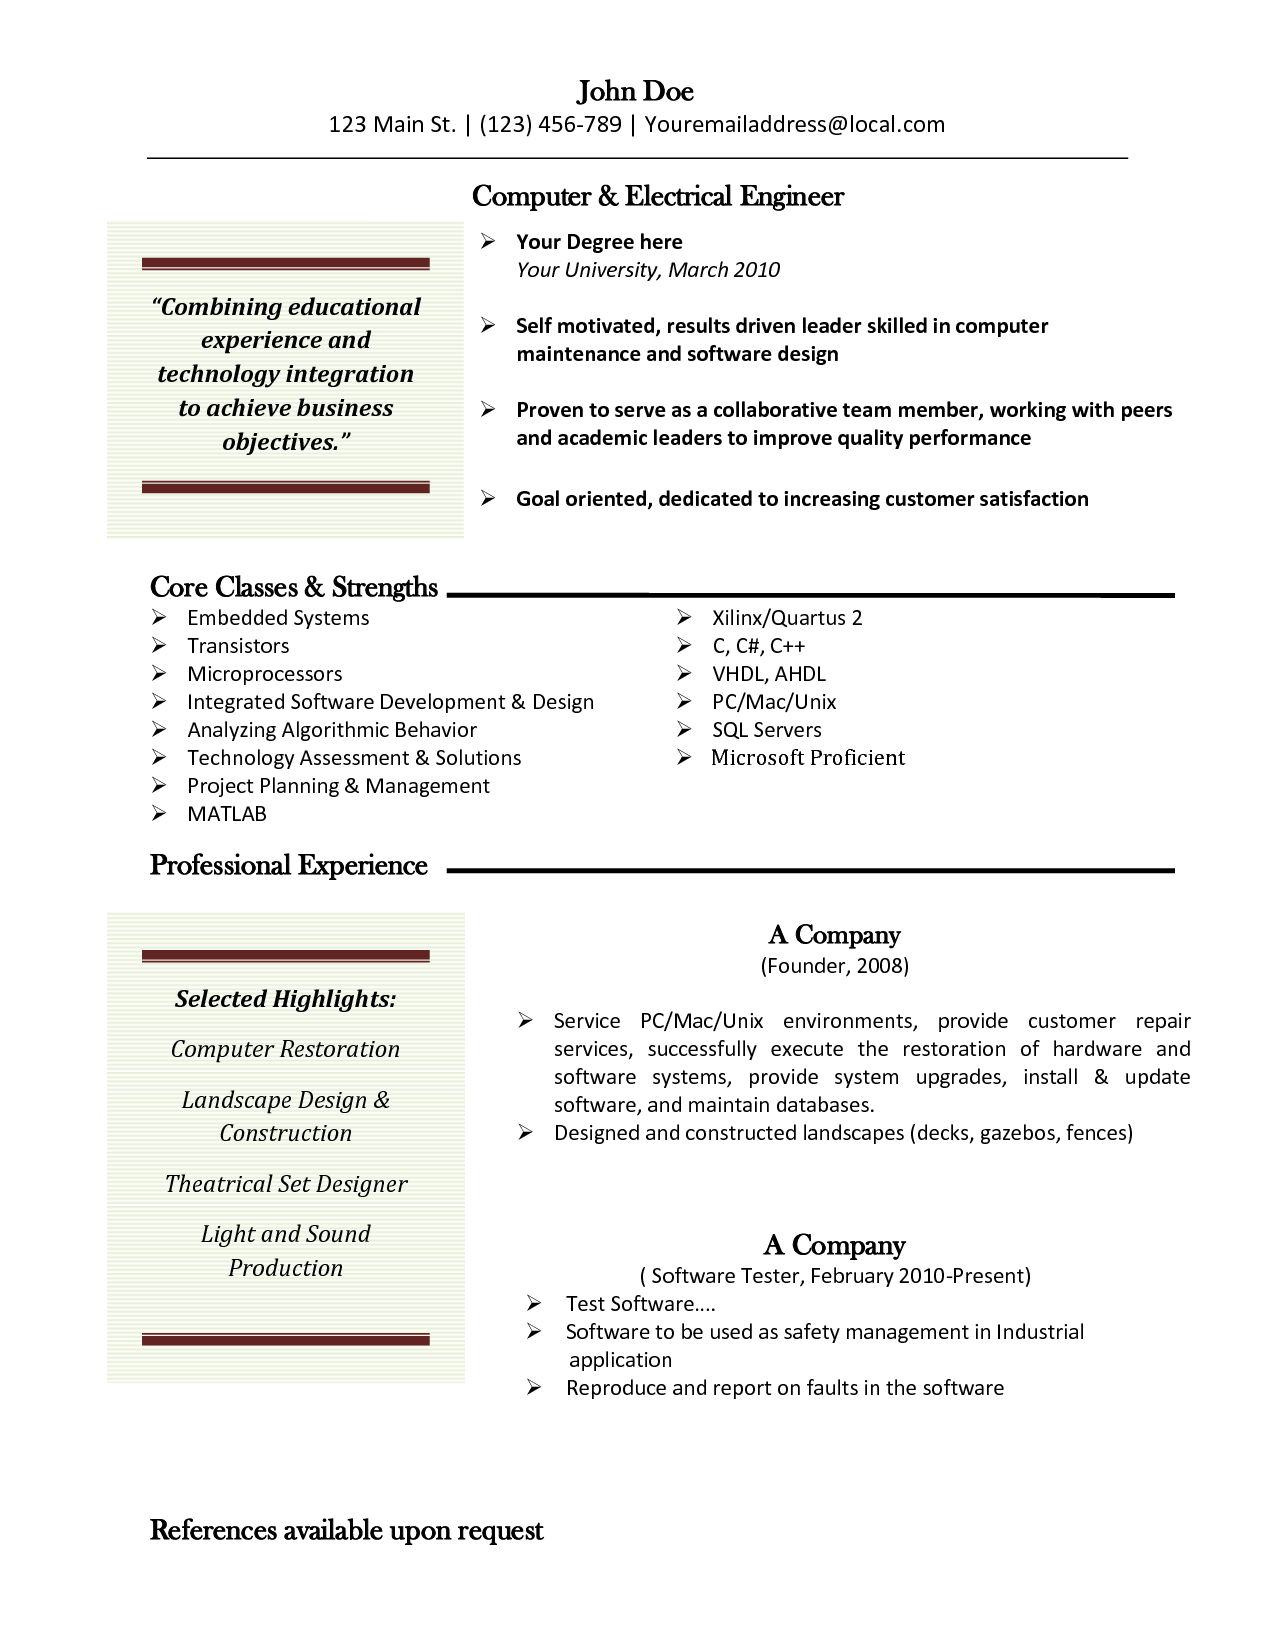 Resume Templates Free Download Word Freeresumetemplatesformaccqjykibi 1275×1650  Cv